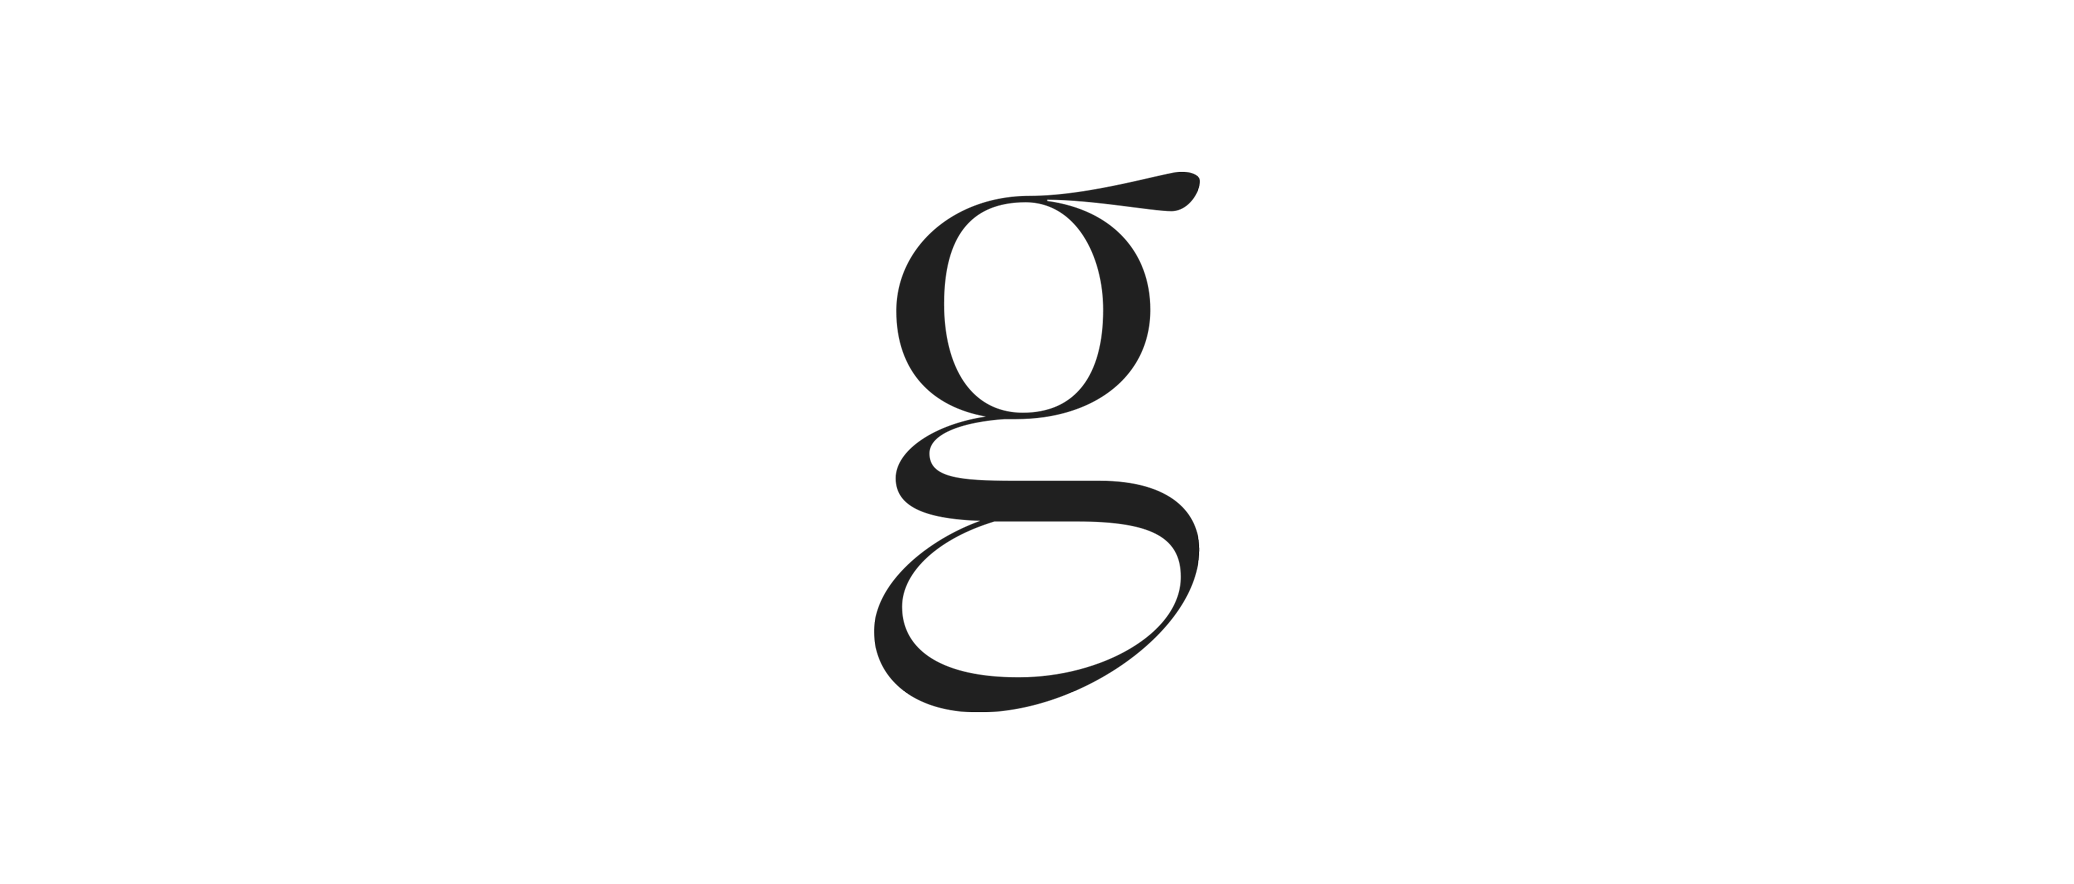 Between Calligraphy And Serif Type Design That Curve Shows The Effect Of Pen As It Rolls Up Before Easing At Bottom Into A Subtle